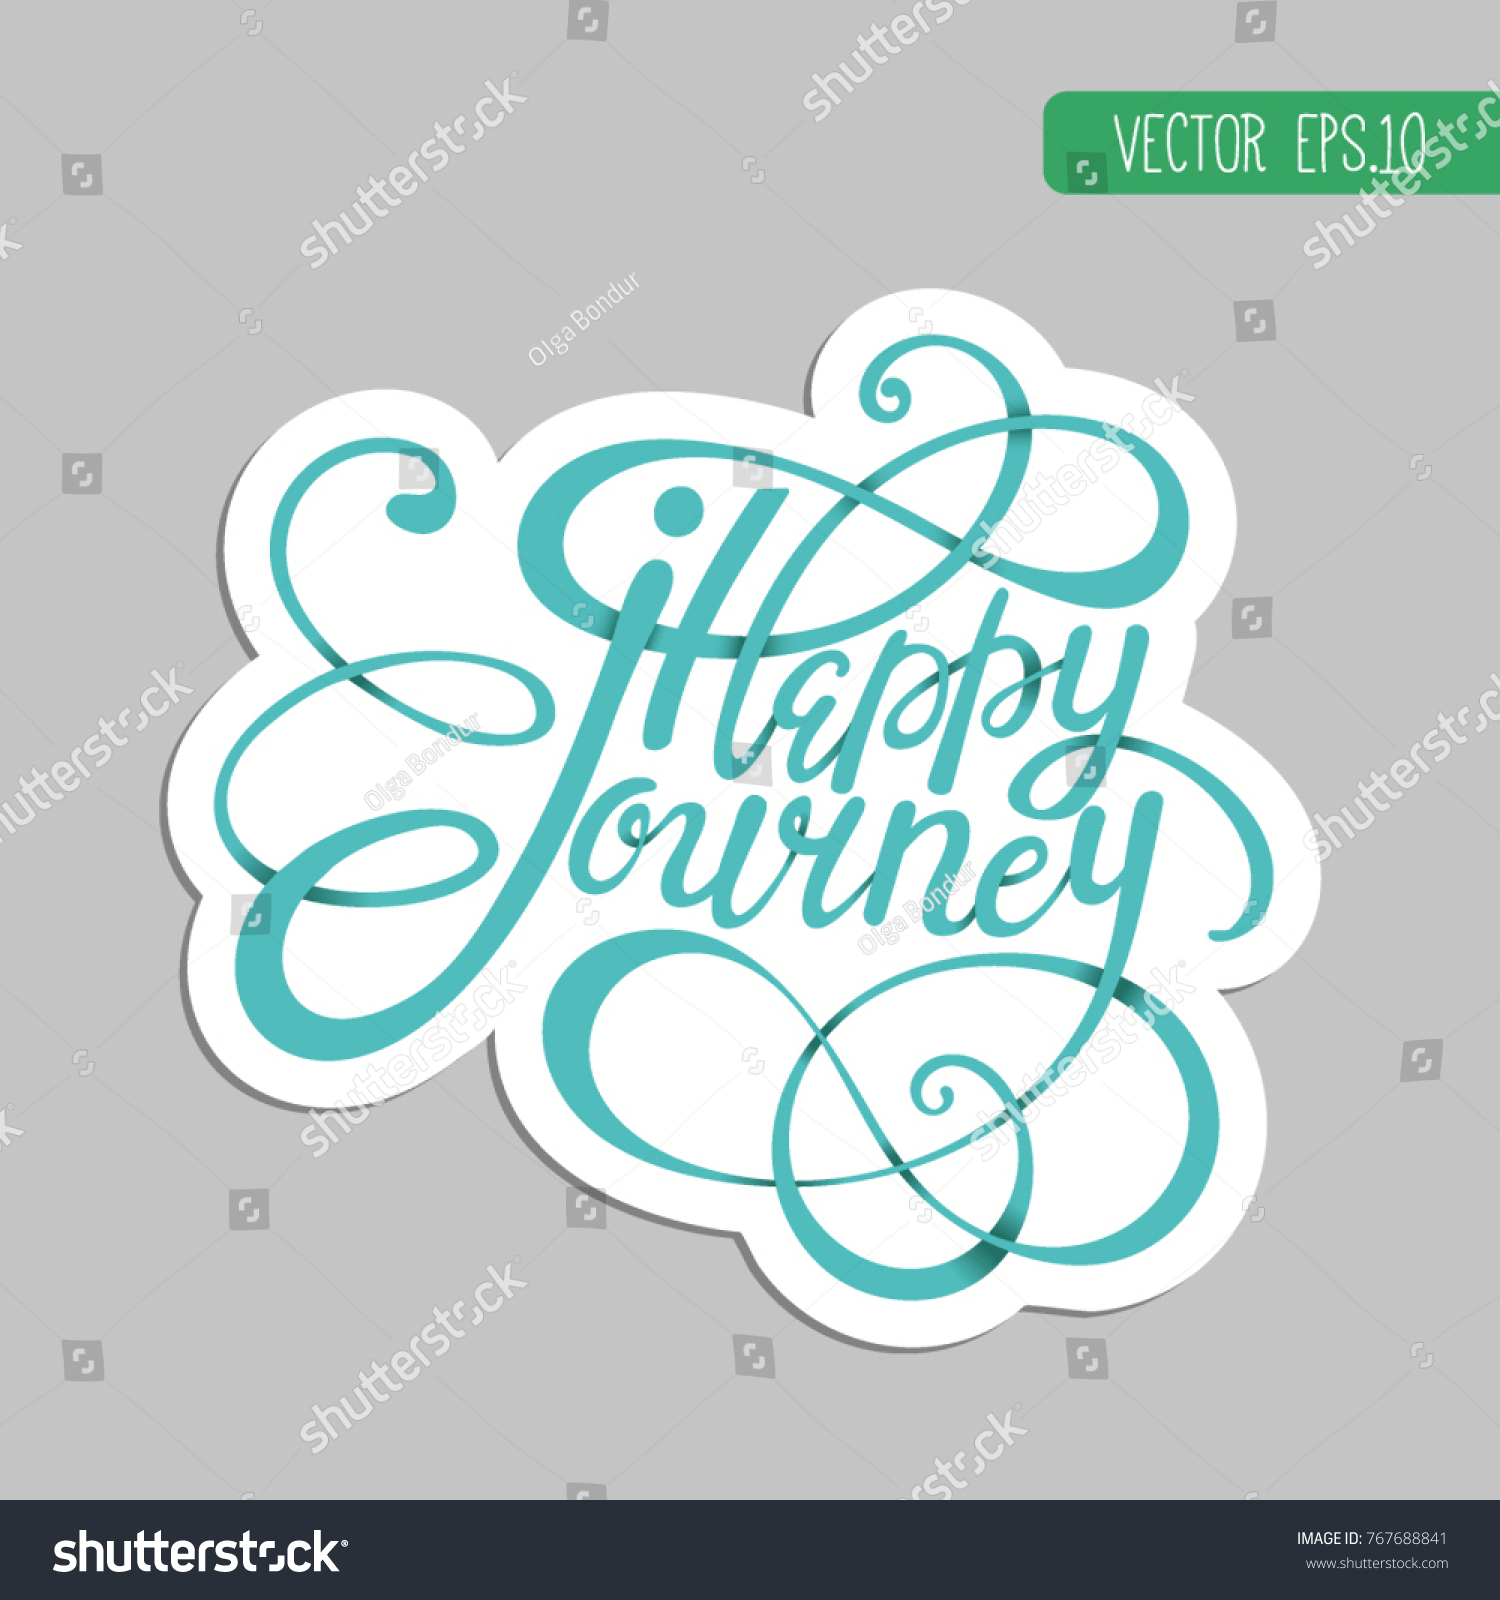 Sticker lettering monogram happy journey wishing stock vector sticker lettering monogram happy journey the wishing the good way sticker tourism honeymoon kristyandbryce Images